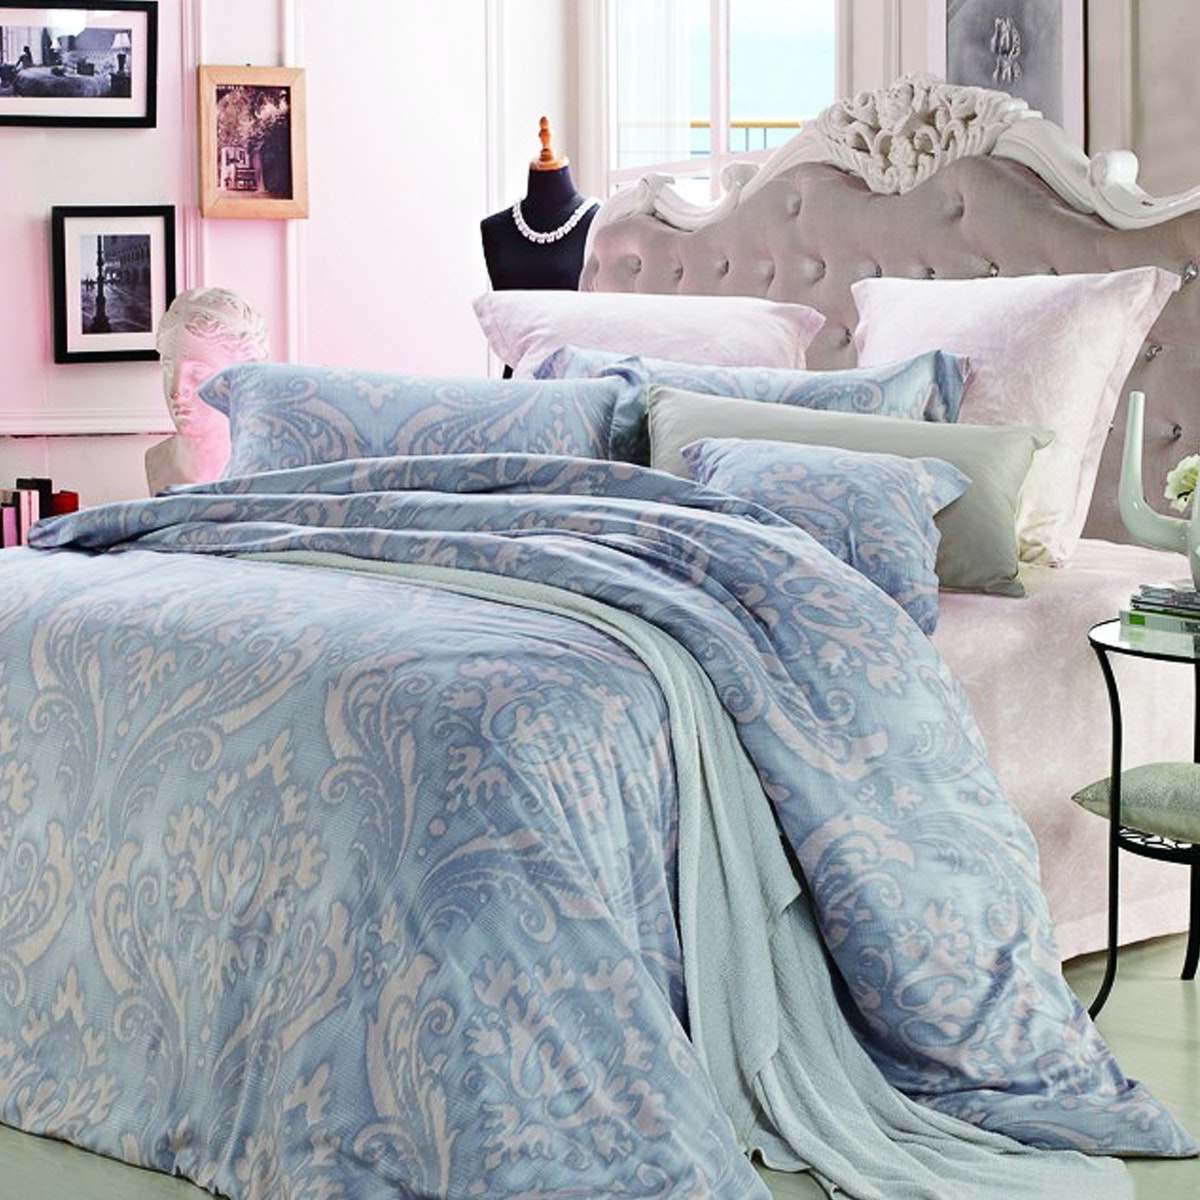 Palmerhaus Set Bedcover Verve Blue Bedding Set 200x200x40cm